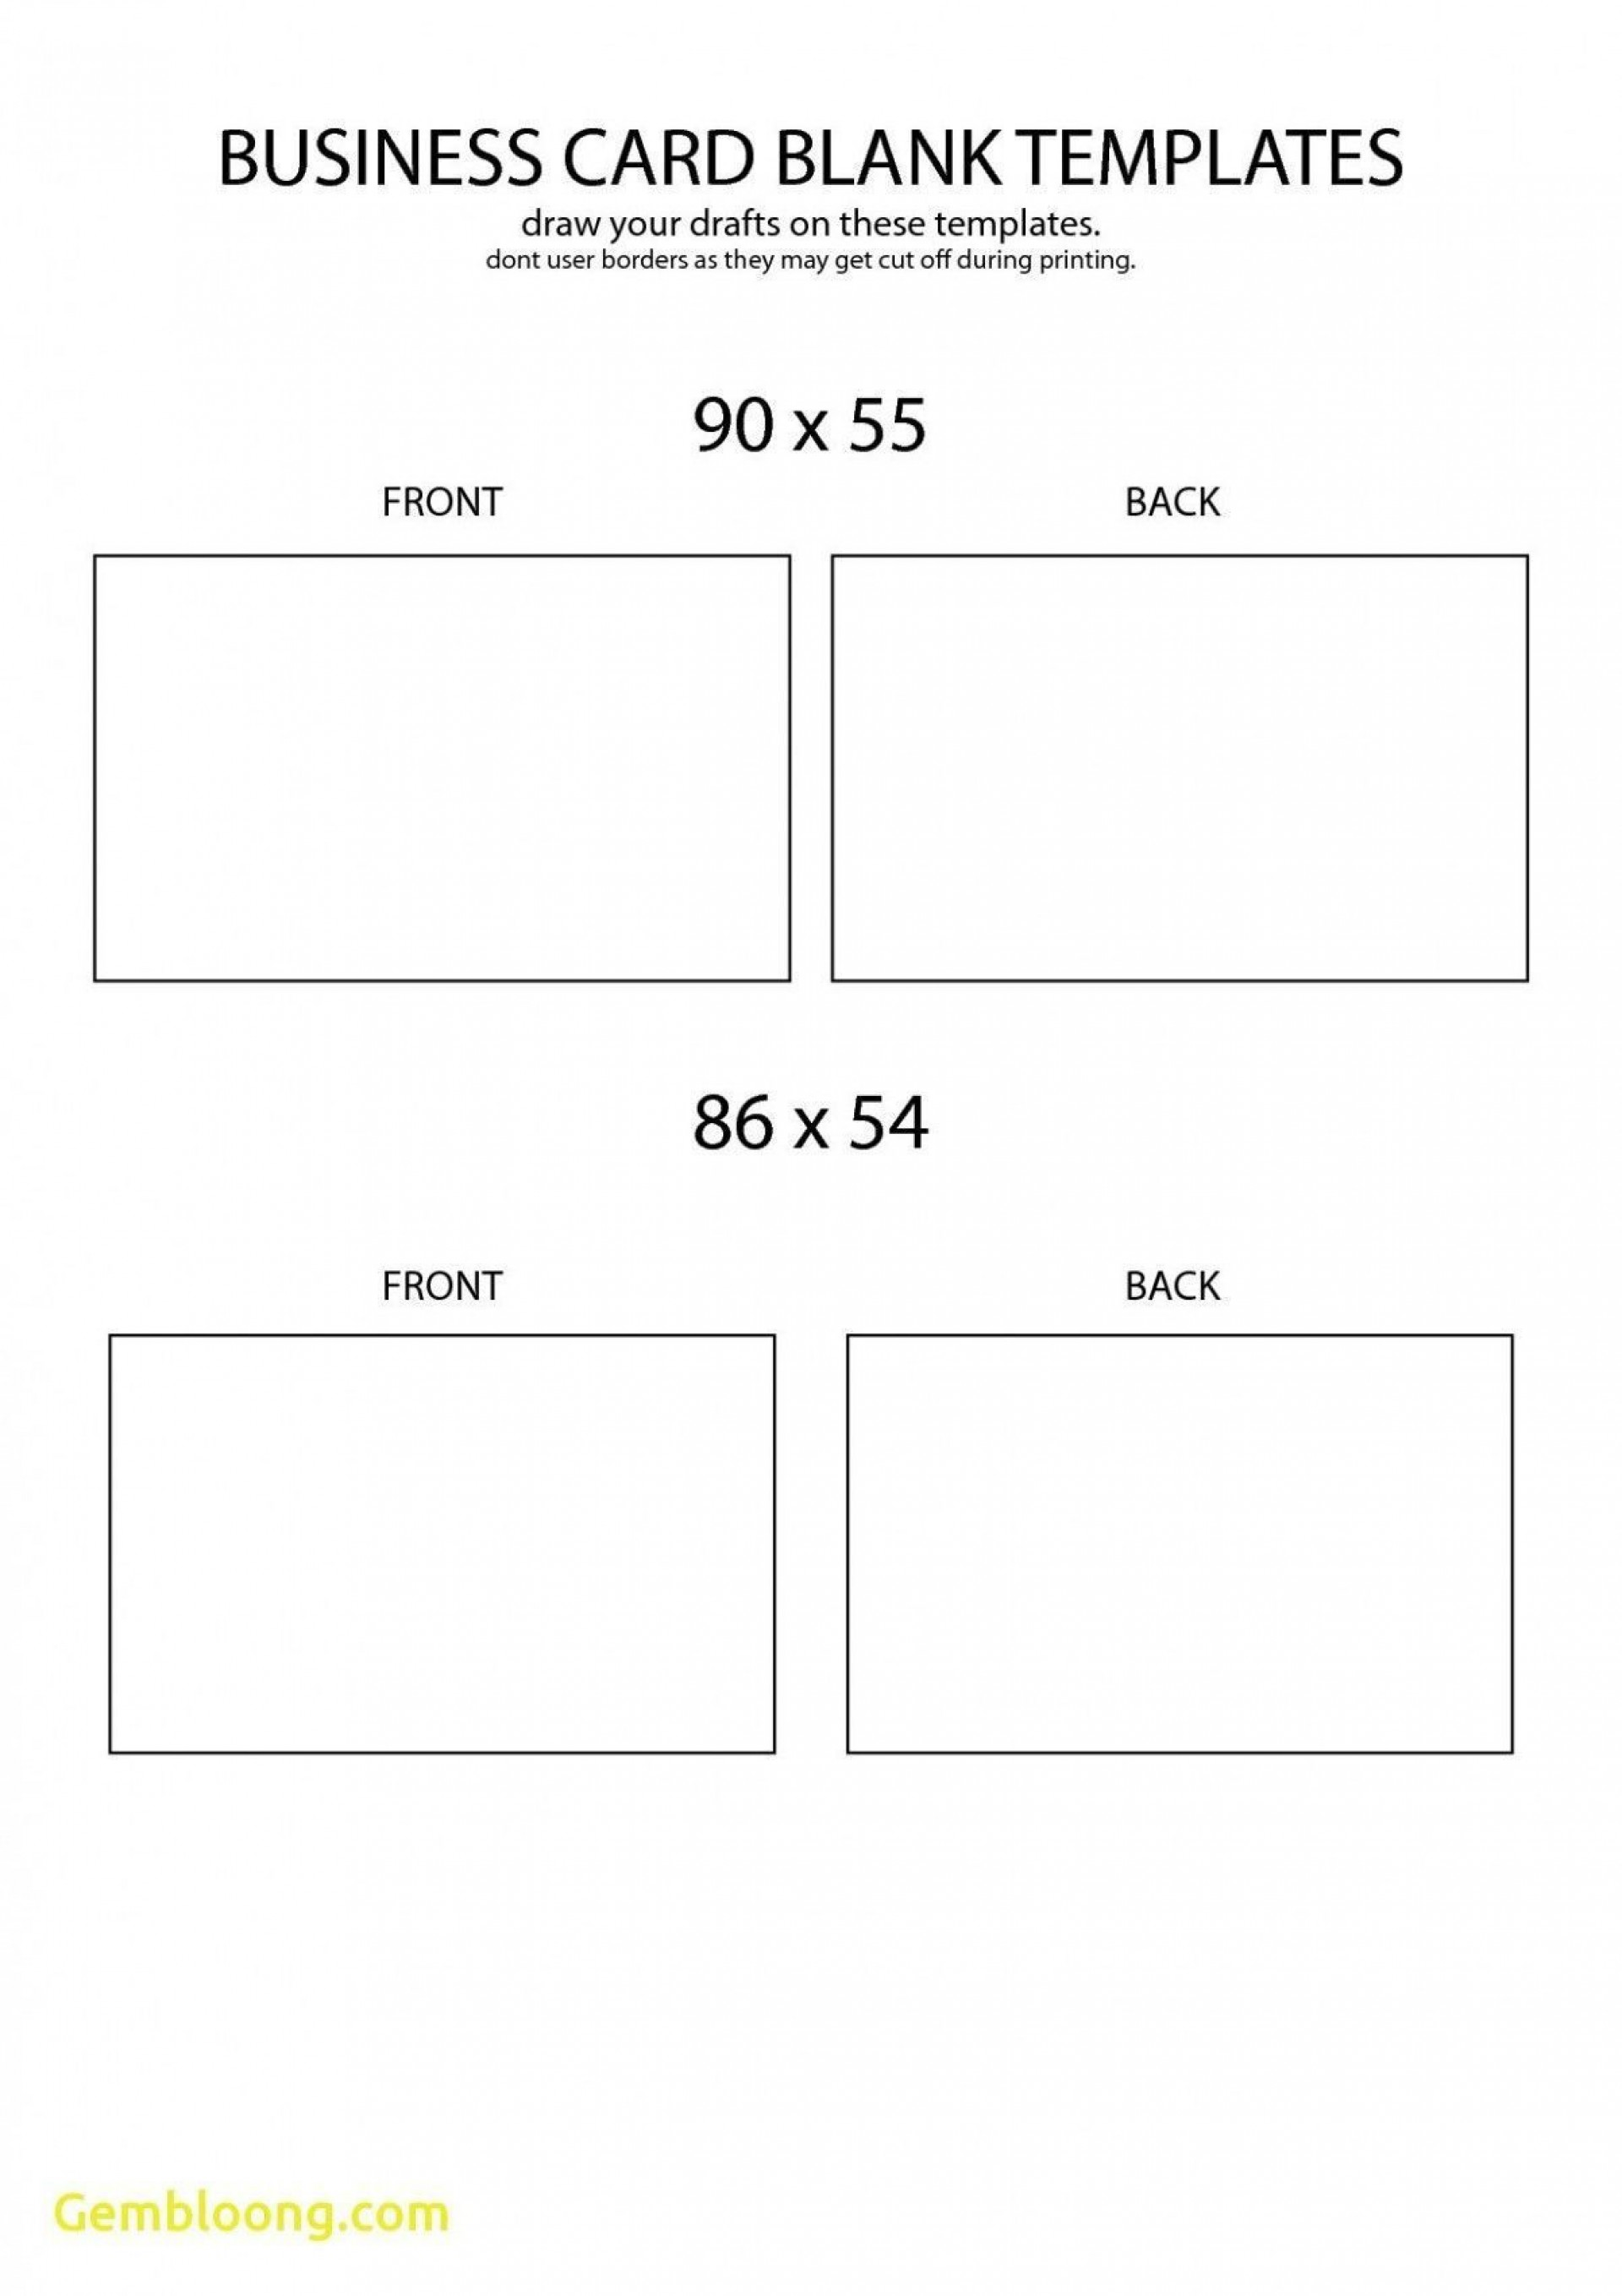 000 Unforgettable Free Printable Busines Template High Def  Templates Card For Google Doc Budget Microsoft Word1920